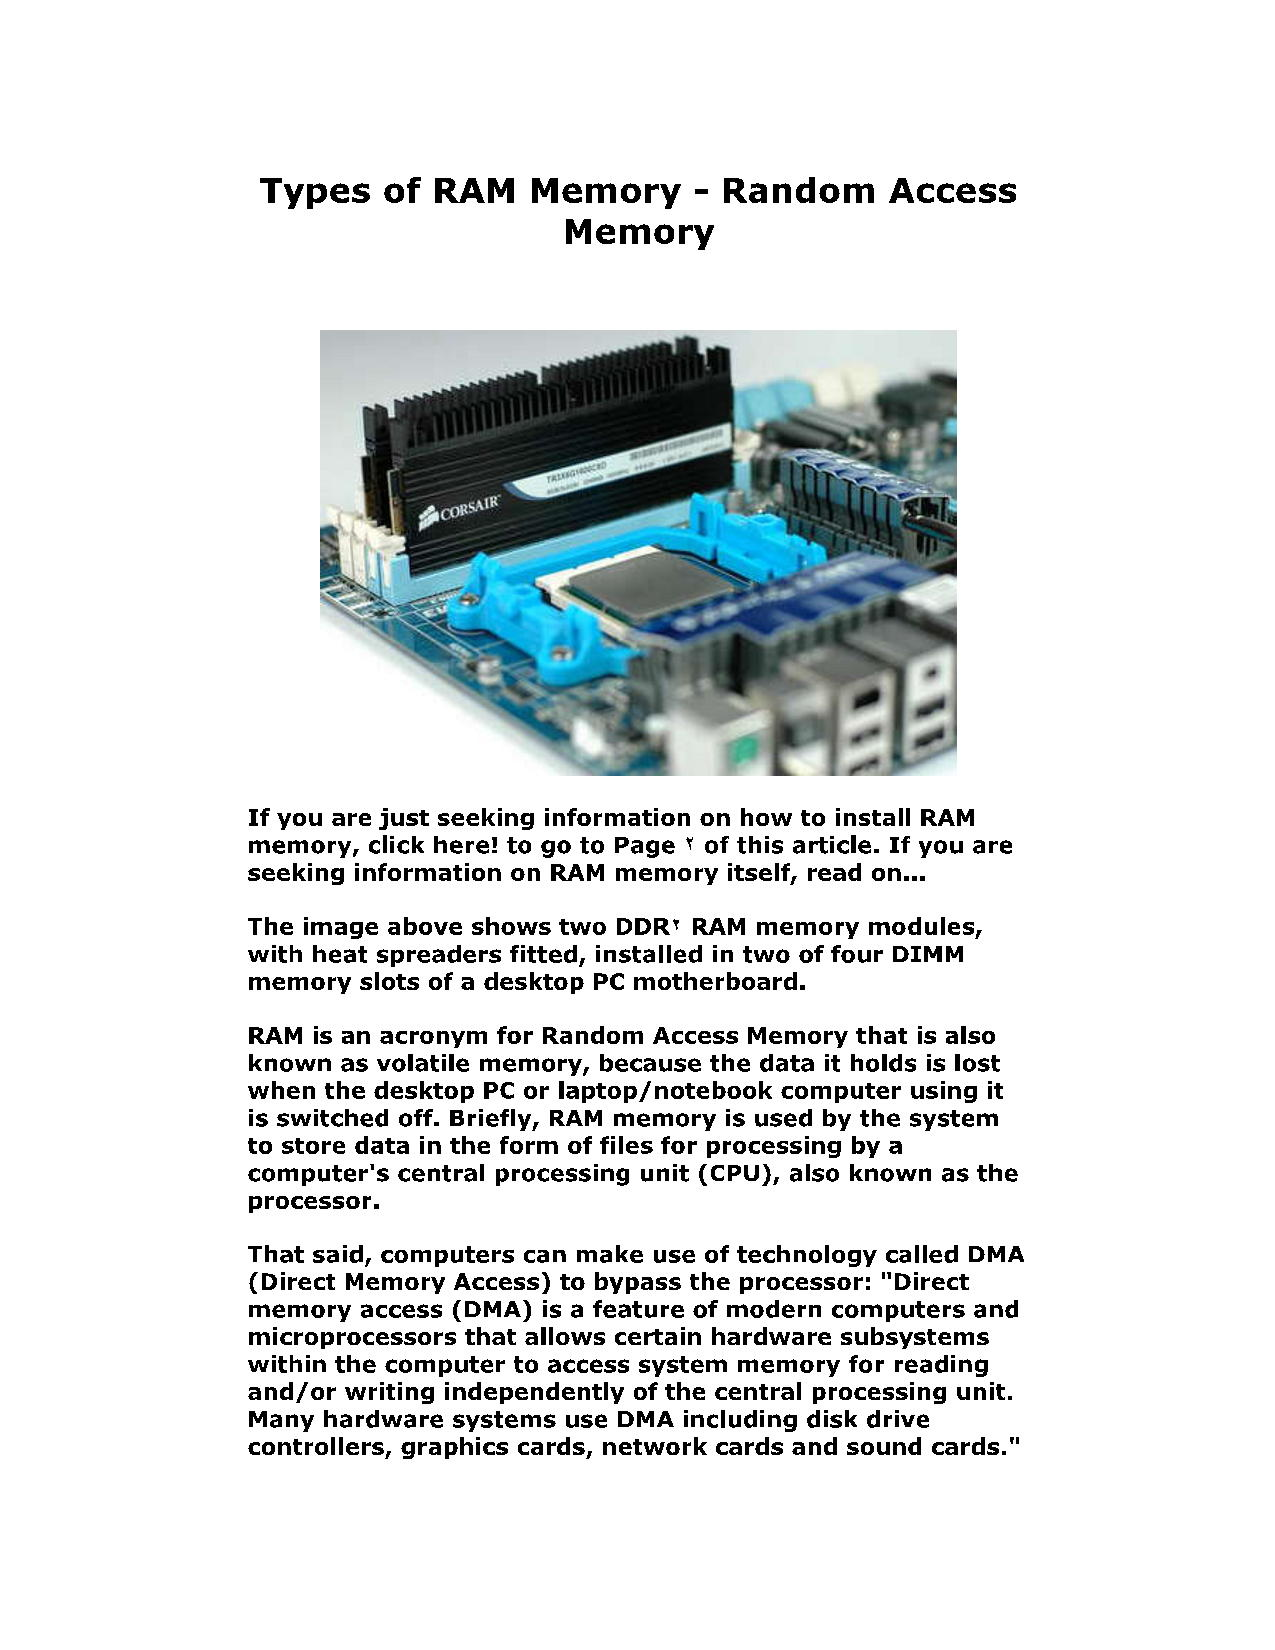 Types of RAM Memory - Random Access Memory 4